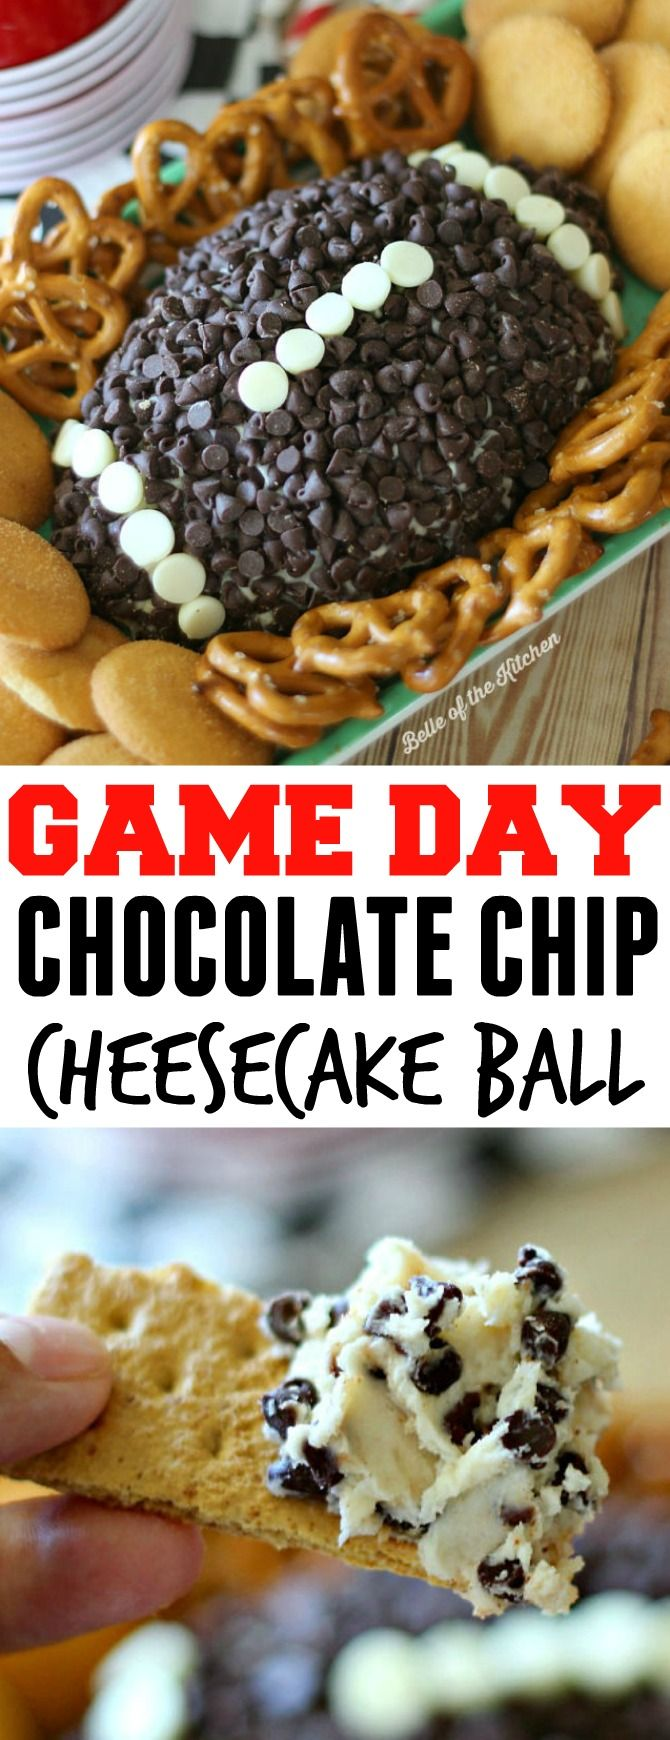 This Chocolate Chip Cheesecake Ball is the perfect appetizer for game day snacki…